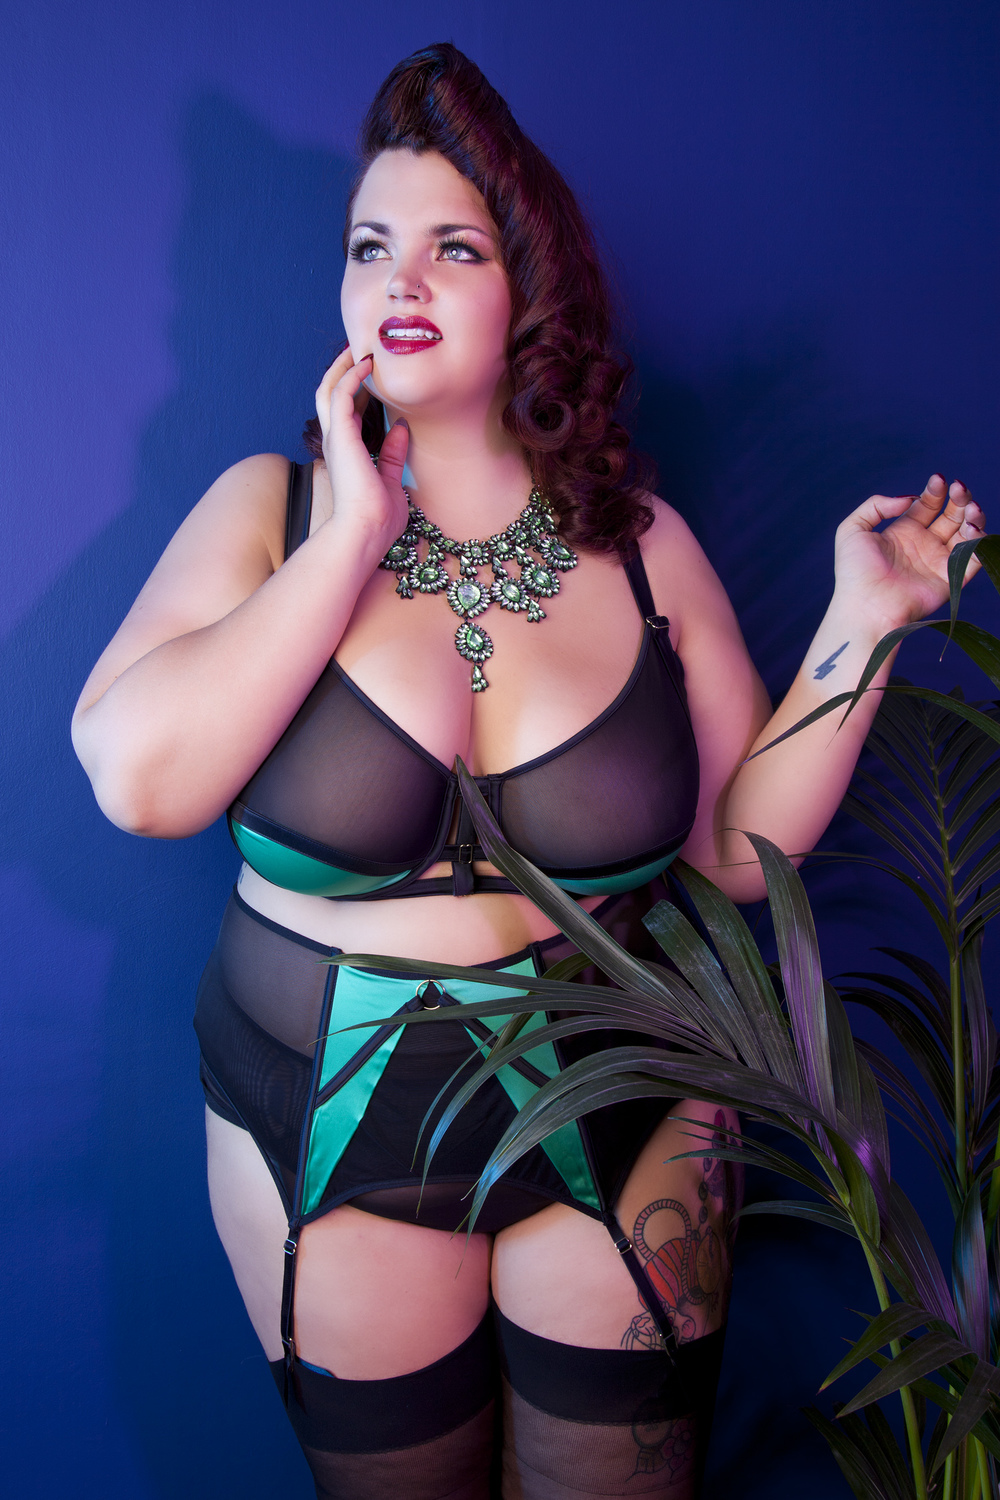 The Emerald Set (with the Juliet brief)